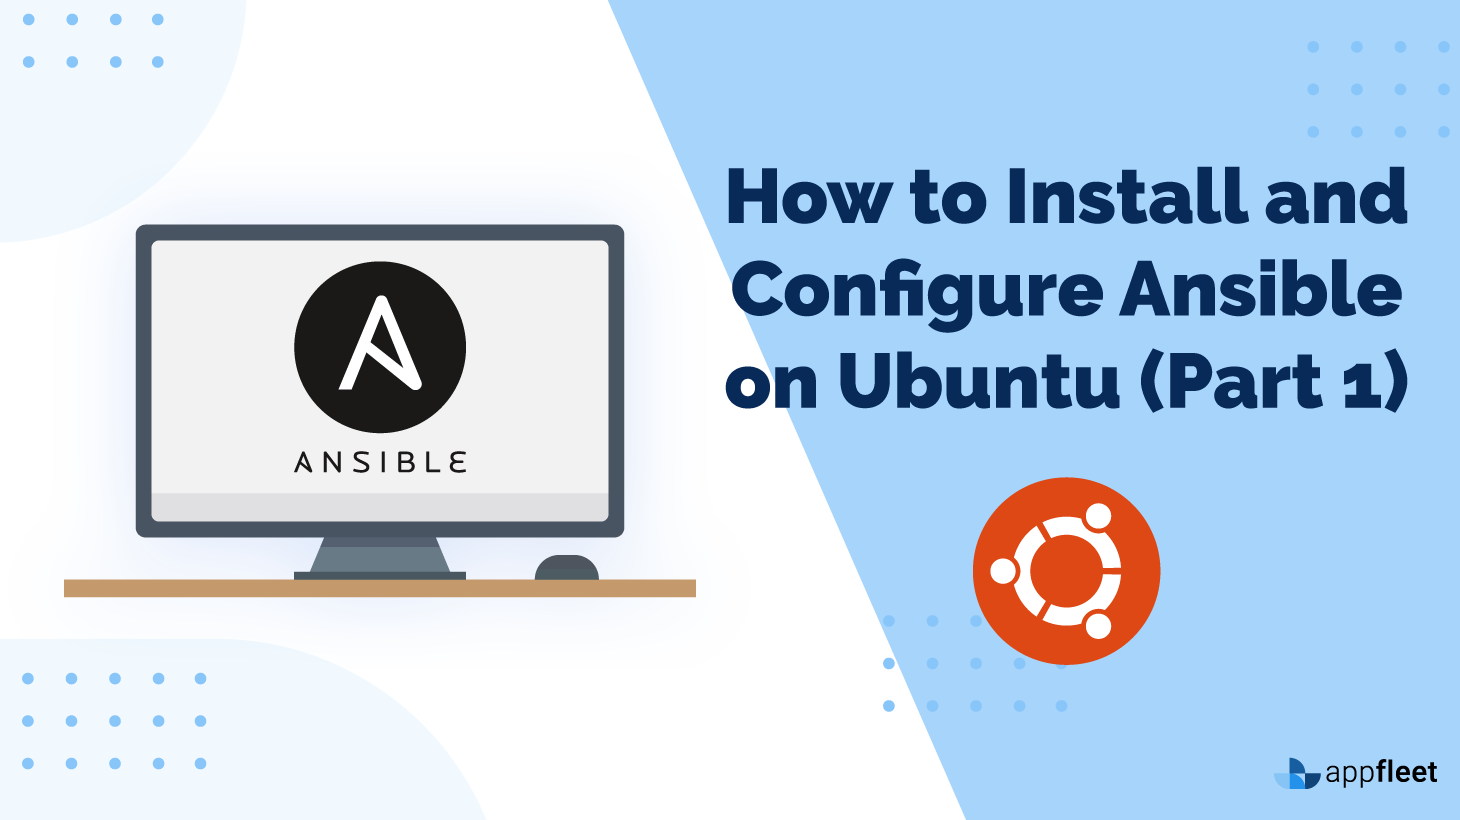 How to Install and Configure Ansible on Ubuntu (Part 1)